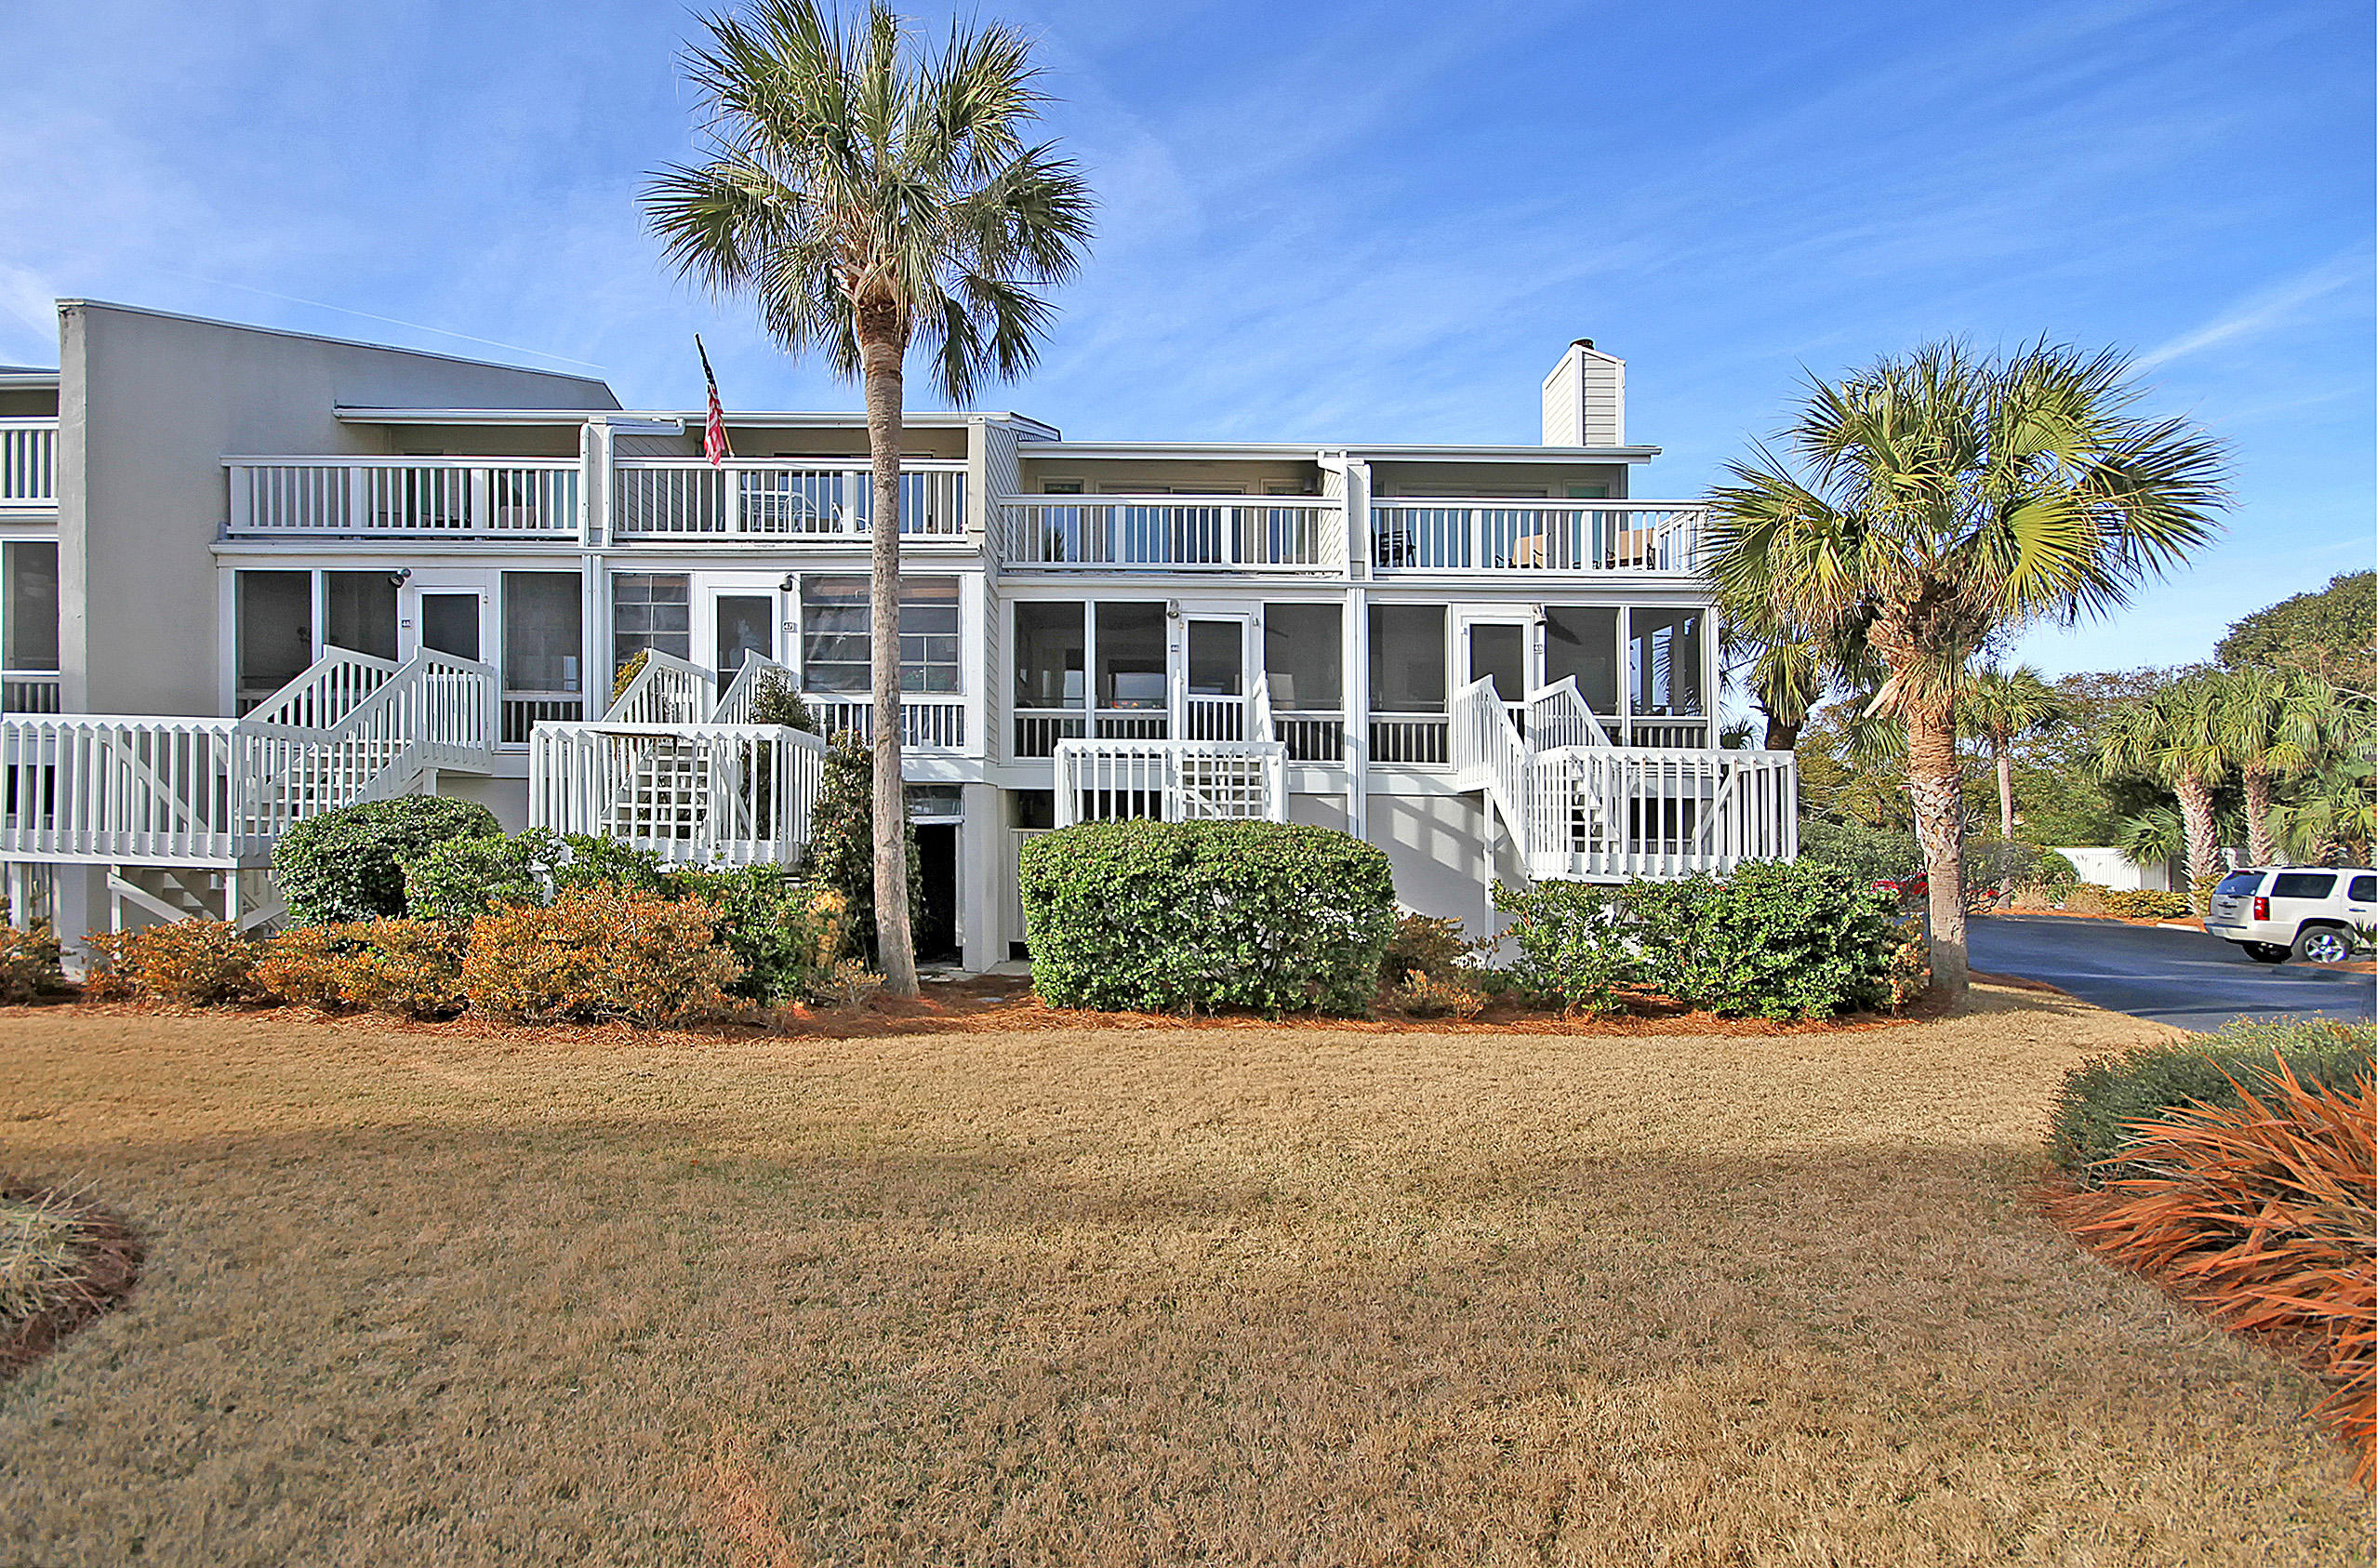 46 Beach Club Villas Isle Of Palms, SC 29451